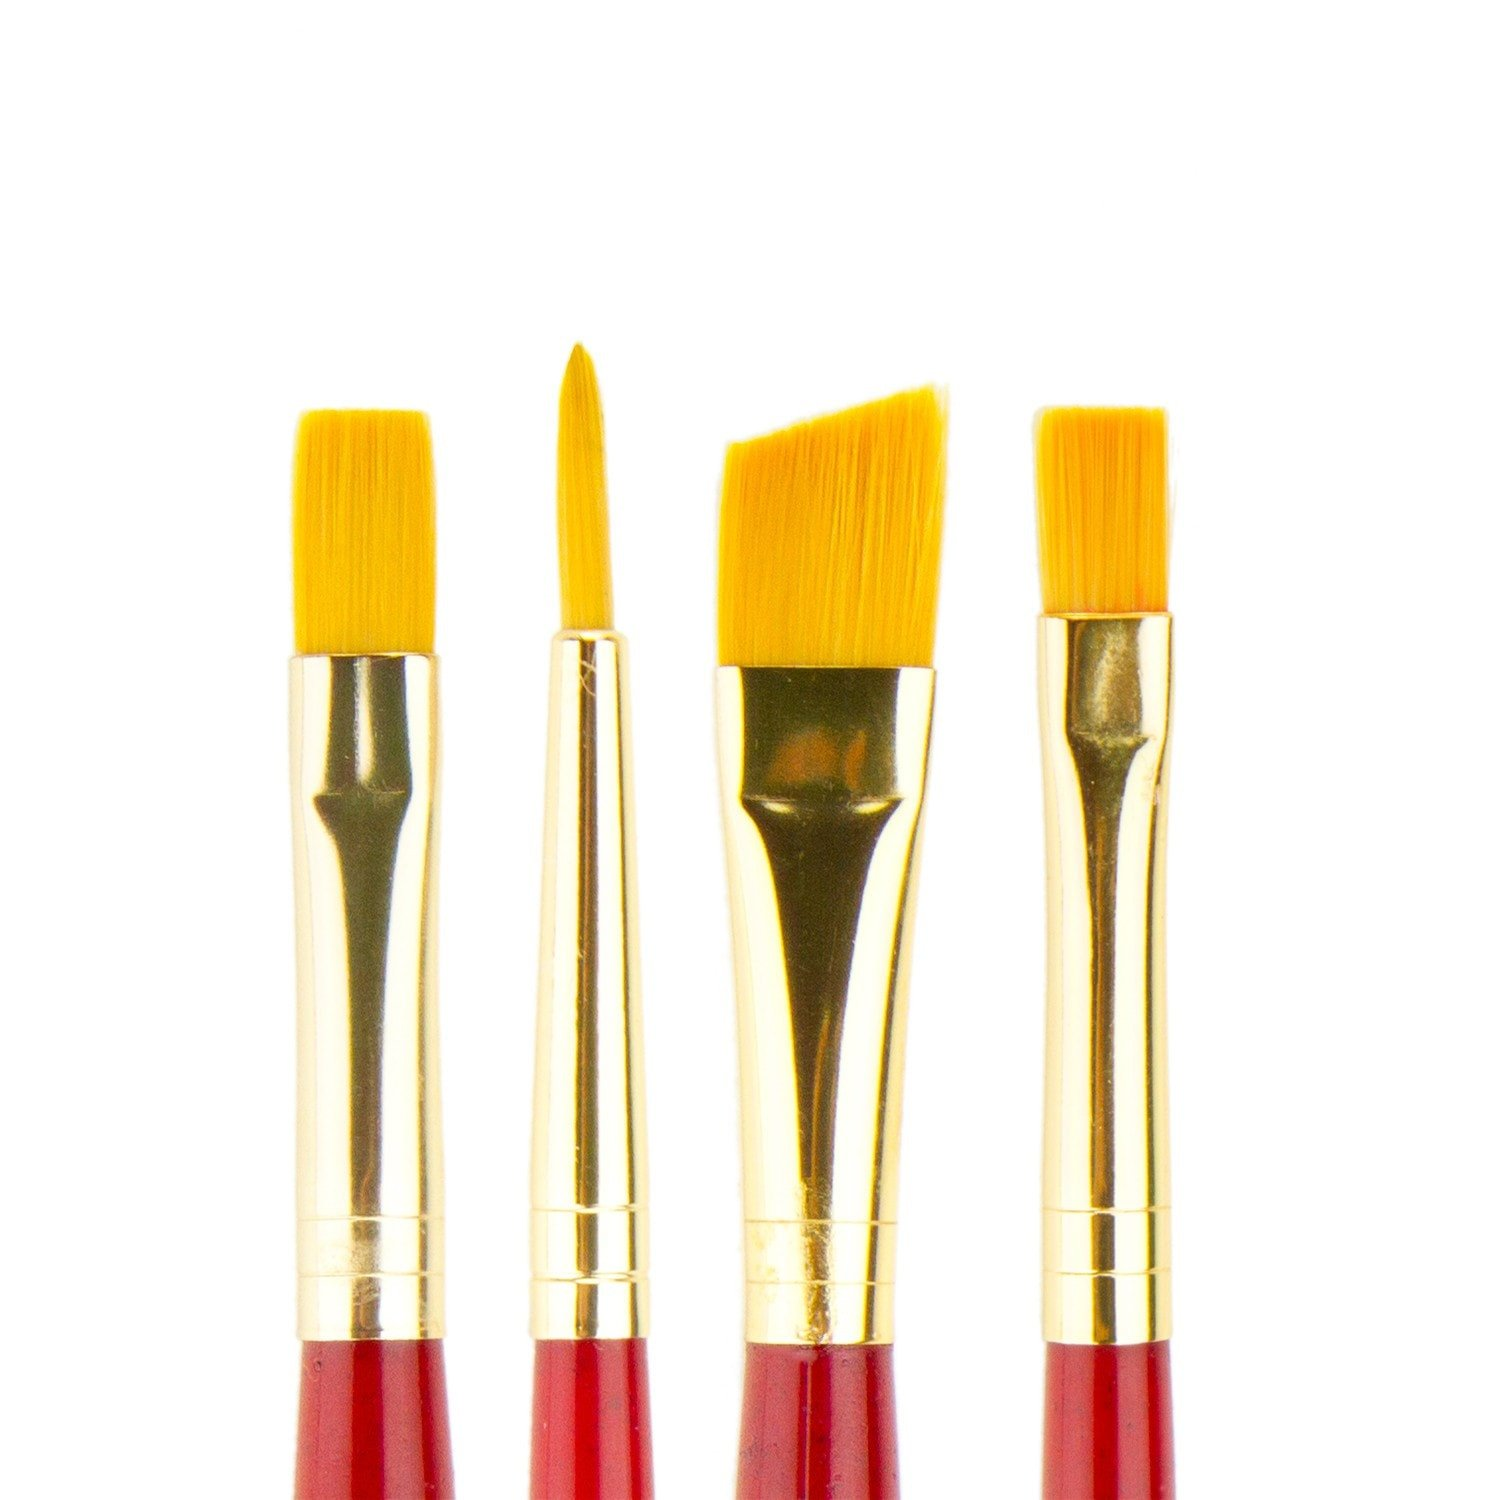 Princeton Paint Brush Set | Paint Brushes Ideal for Acrylic Paint